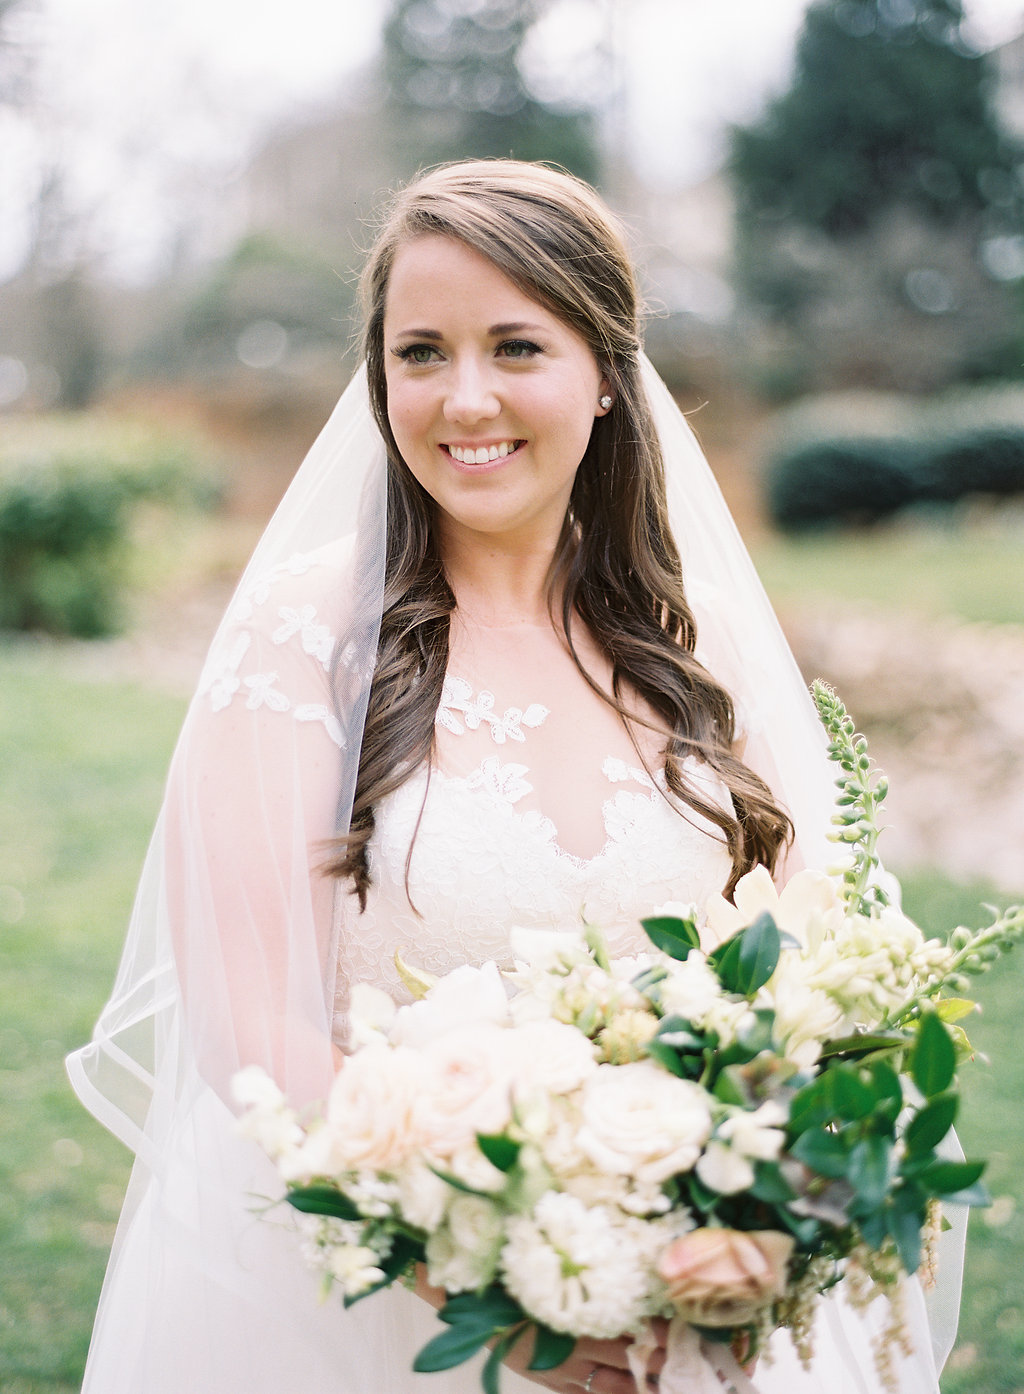 greenville-south-carolina-wedding-event-planner-jessica-rourke-289